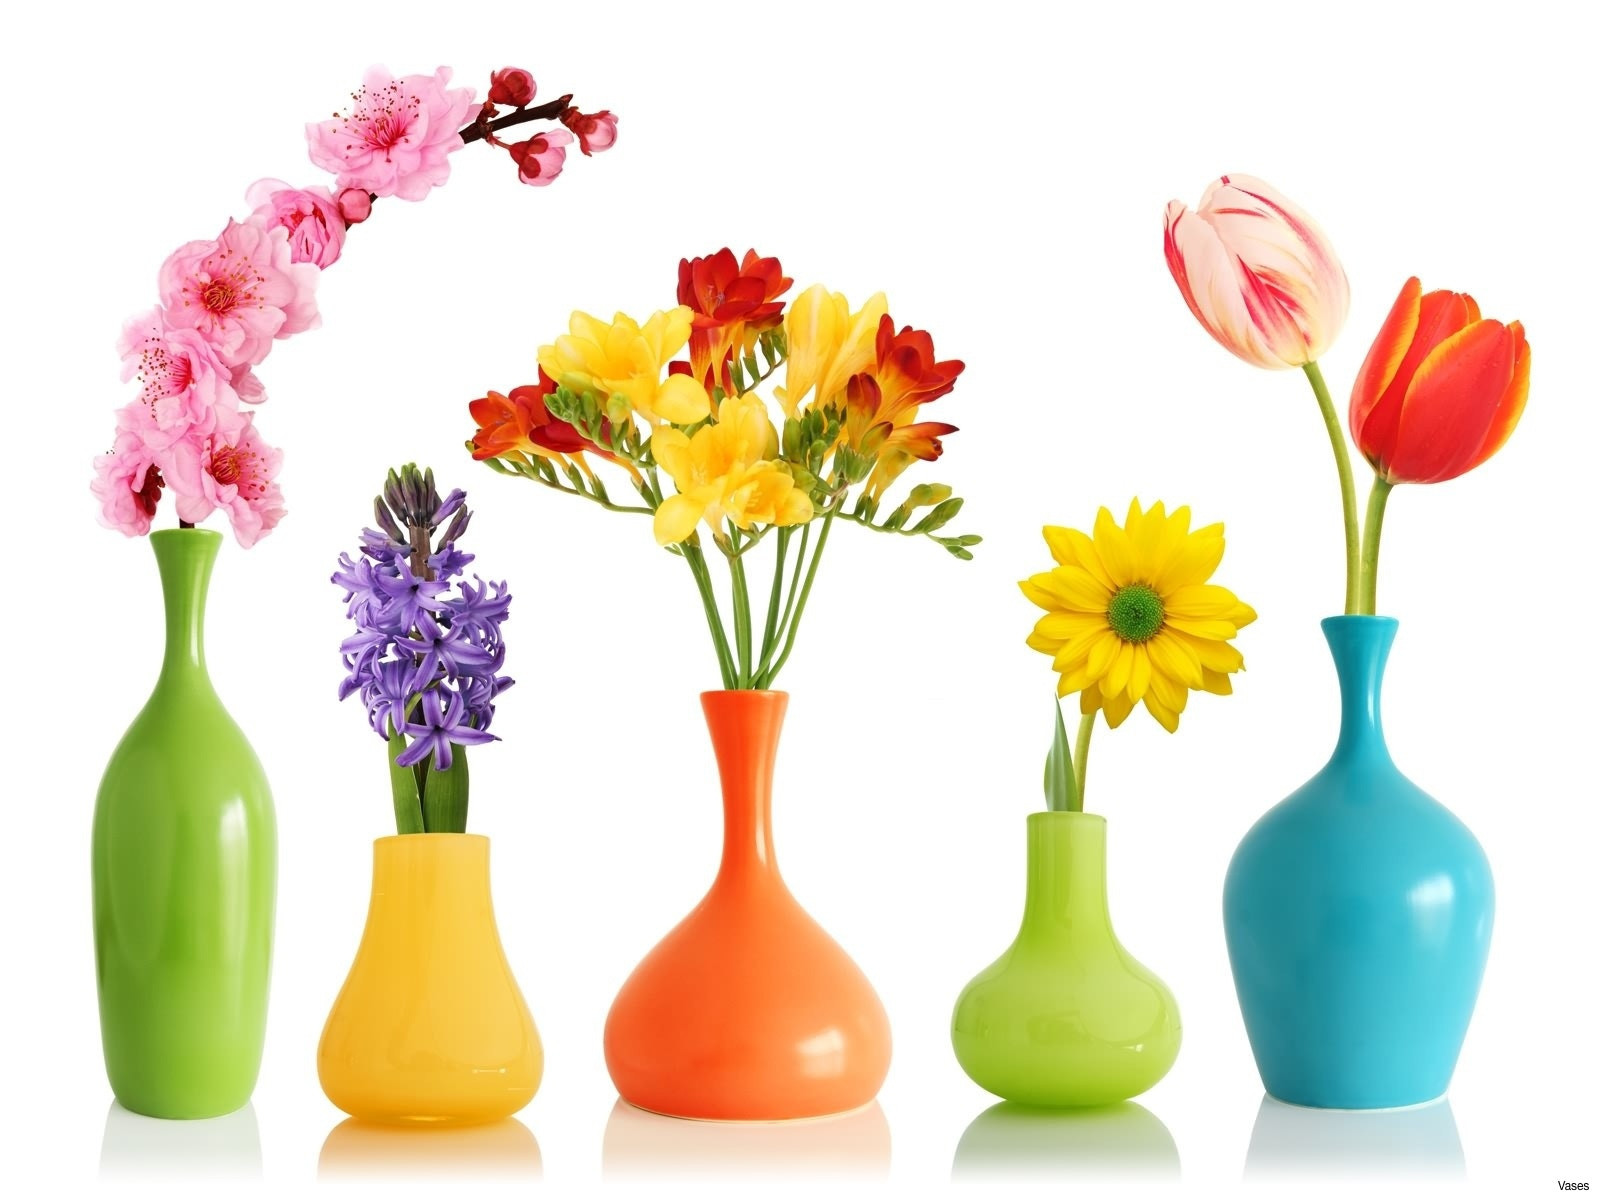 15 Famous Flower Vase Pic 2021 free download flower vase pic of 18best of colorful flowers pictures clip arts coloring pages inside colorful flowers pictures new colorful etched vasesh vases flower vase i 0d design ideas flower